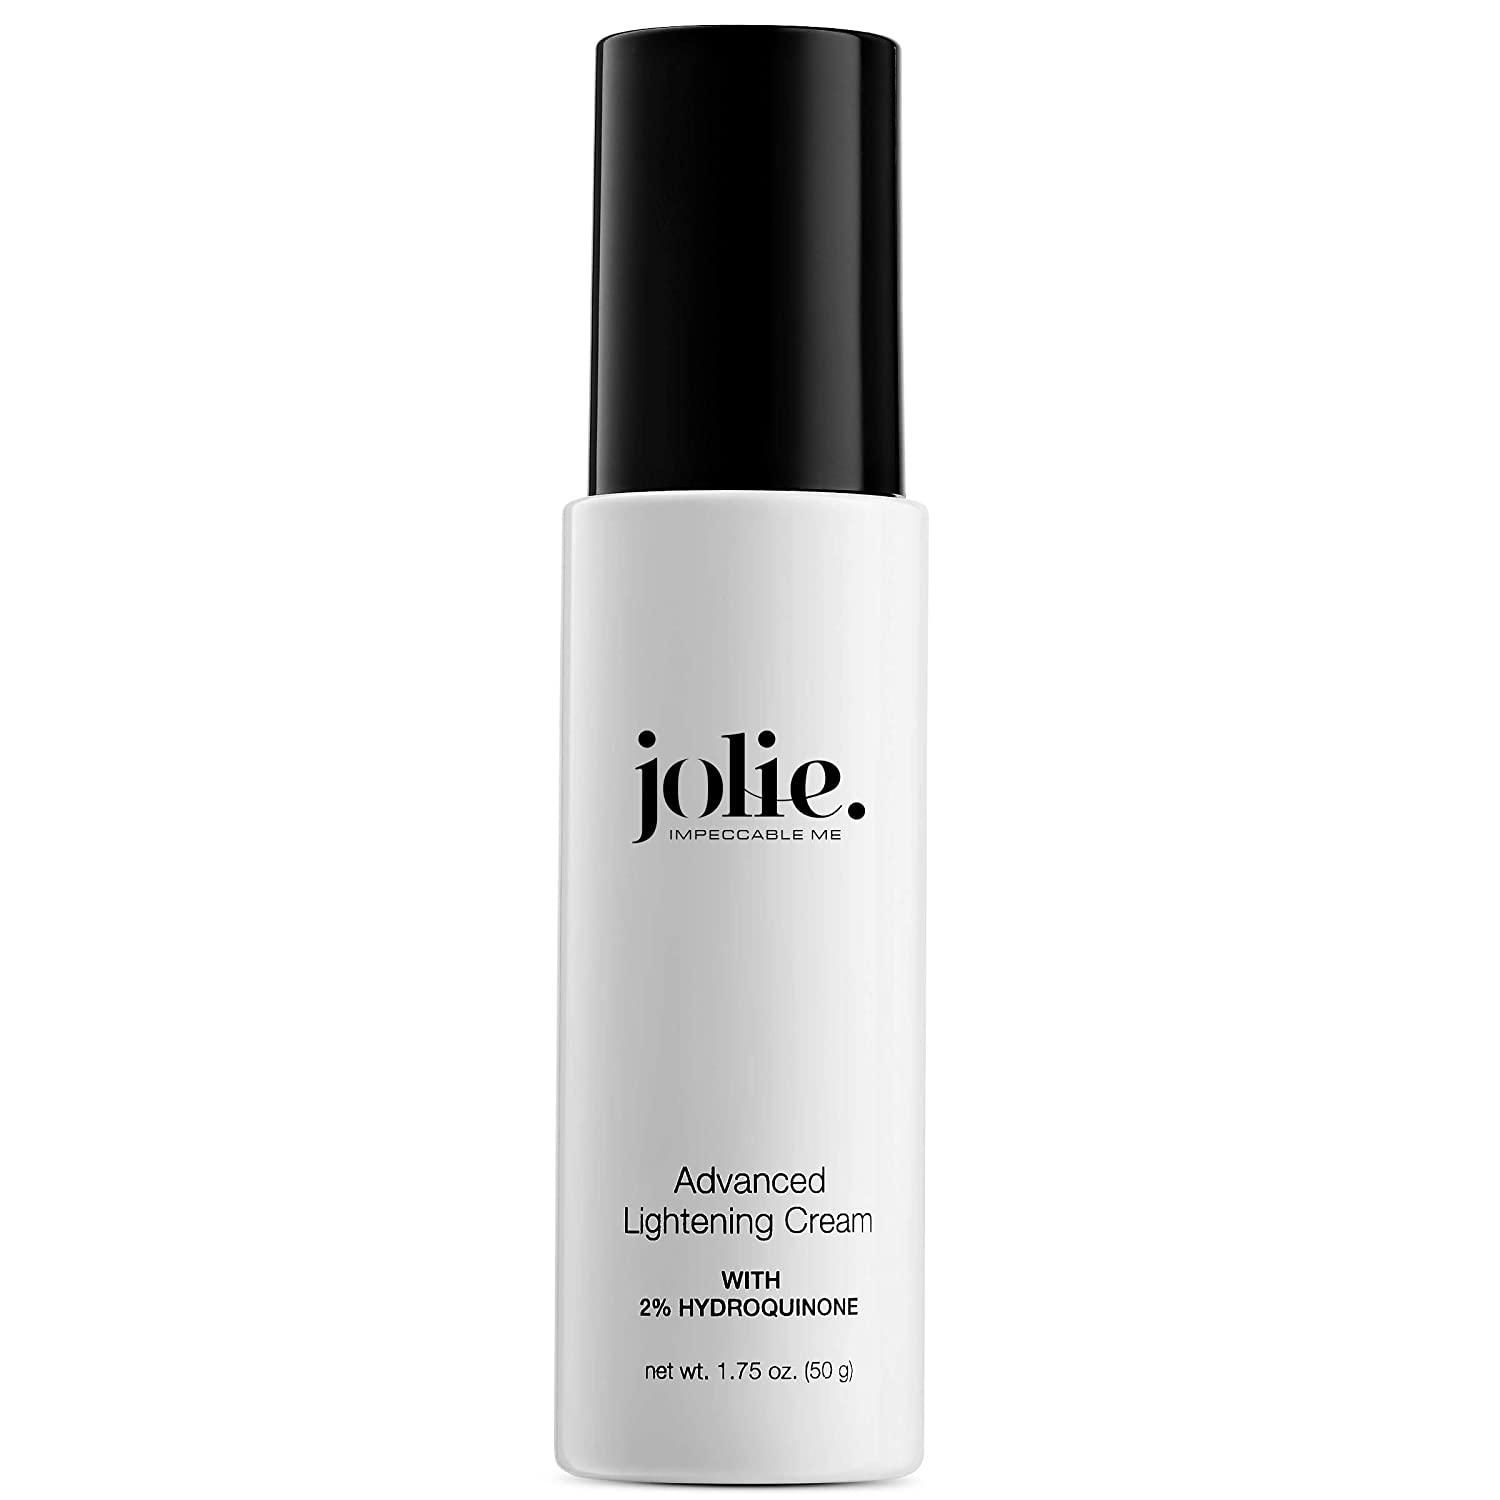 Jolie Advanced Lightening Cream With 2% Hydroquinone